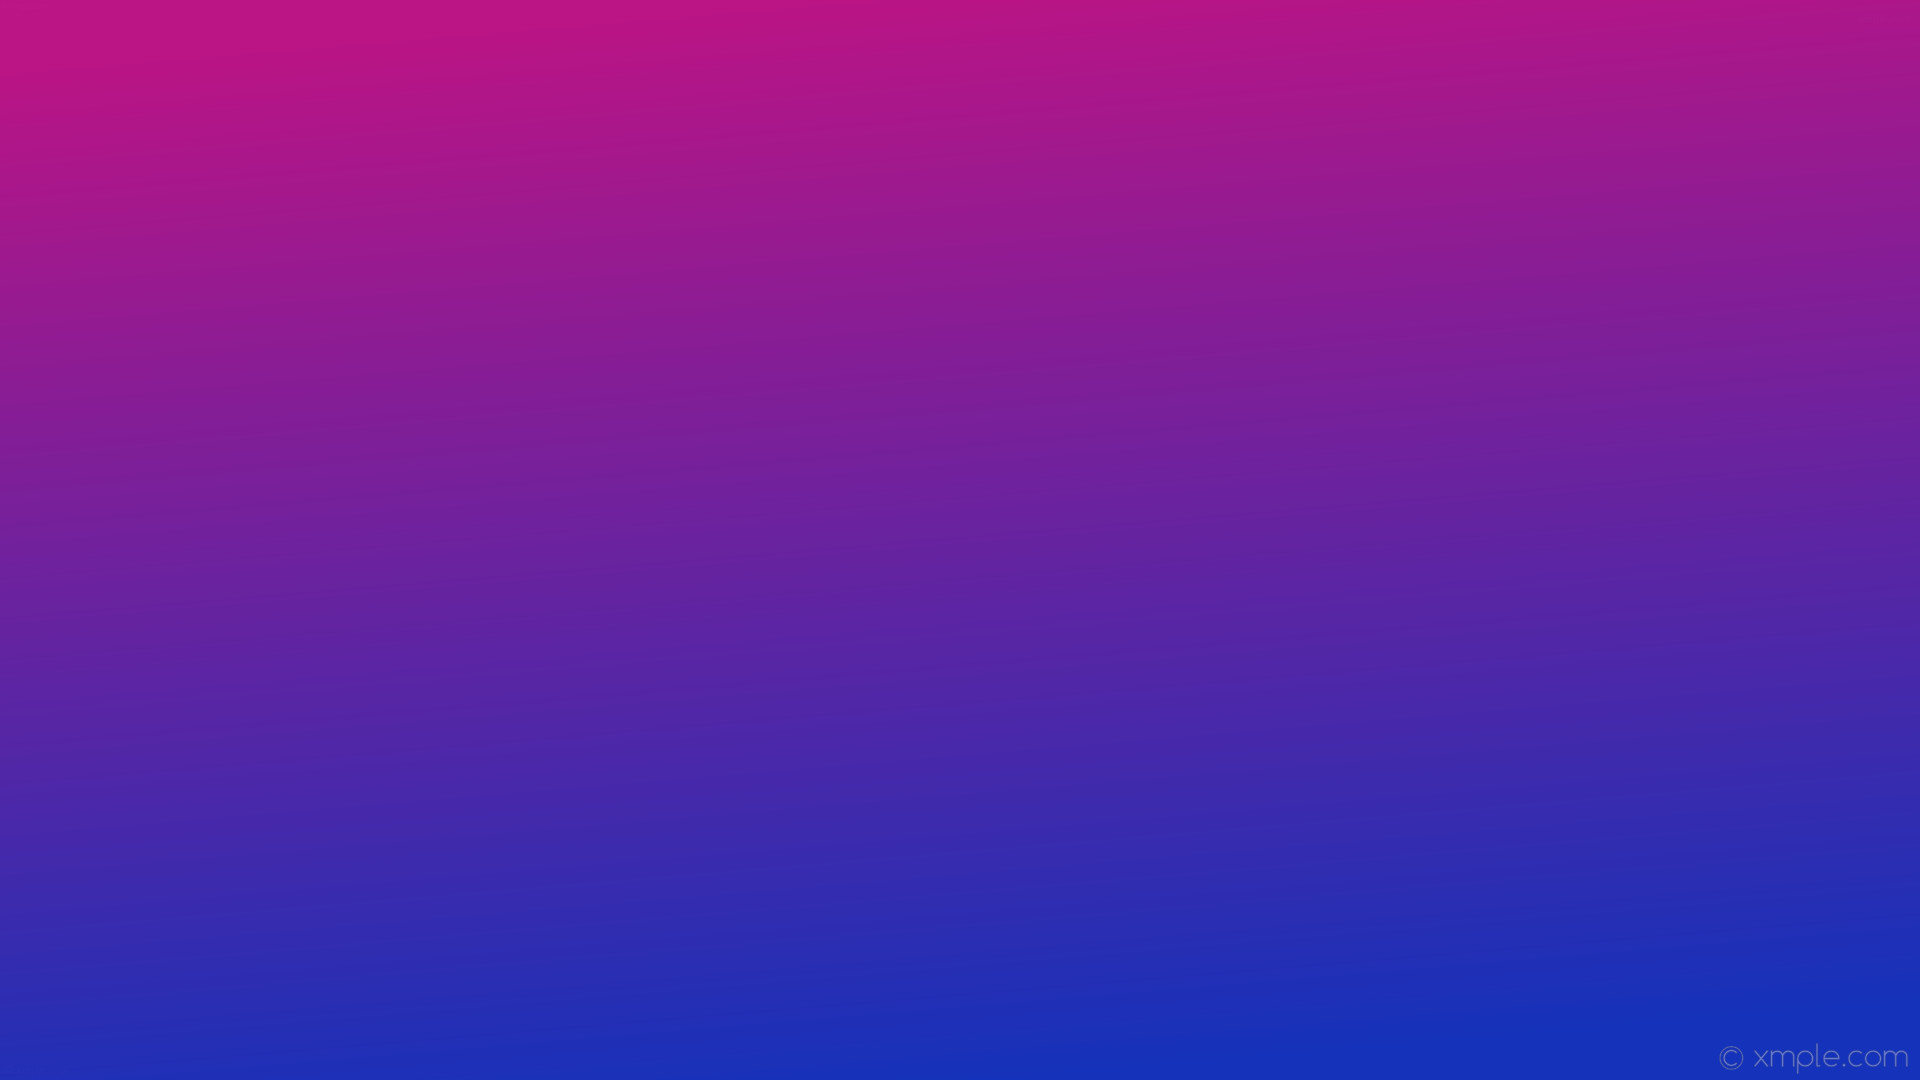 1920x1080 wallpaper linear pink gradient blue #1432ba #ba1485 285°